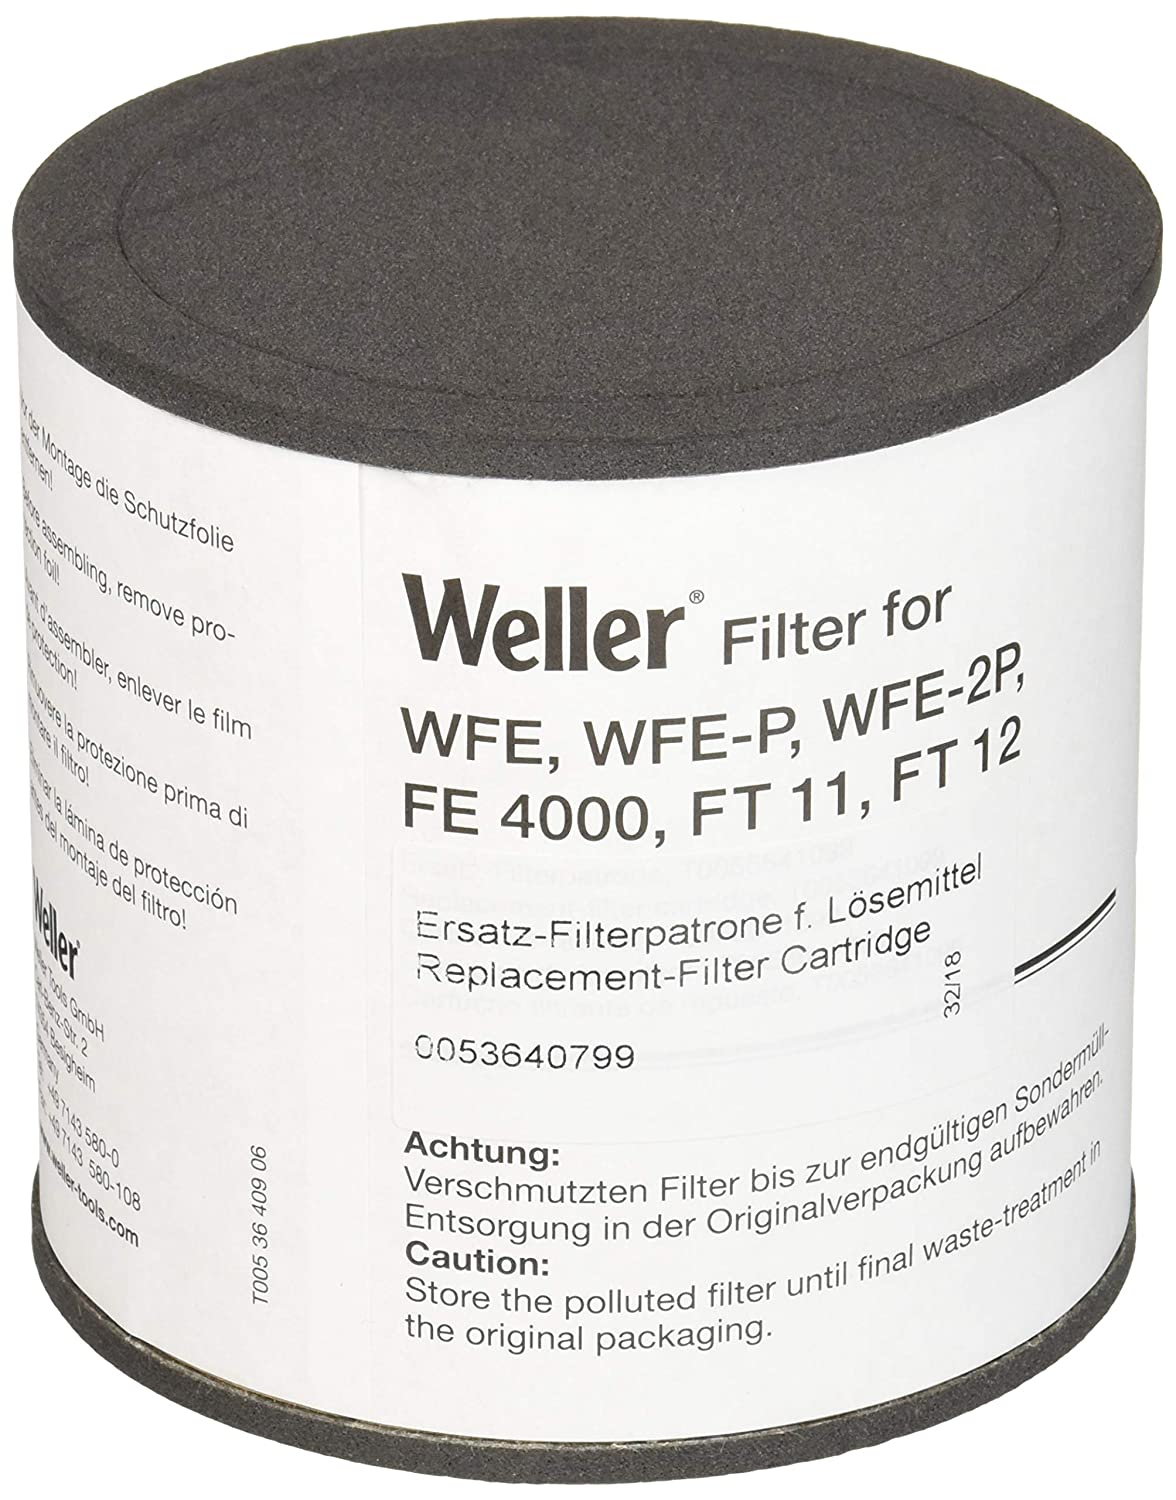 Weller T0053640799 Comp.Filter Aktivk. Wfe/Wfep/Ft11/Fe4000, Black Apex Tool Group